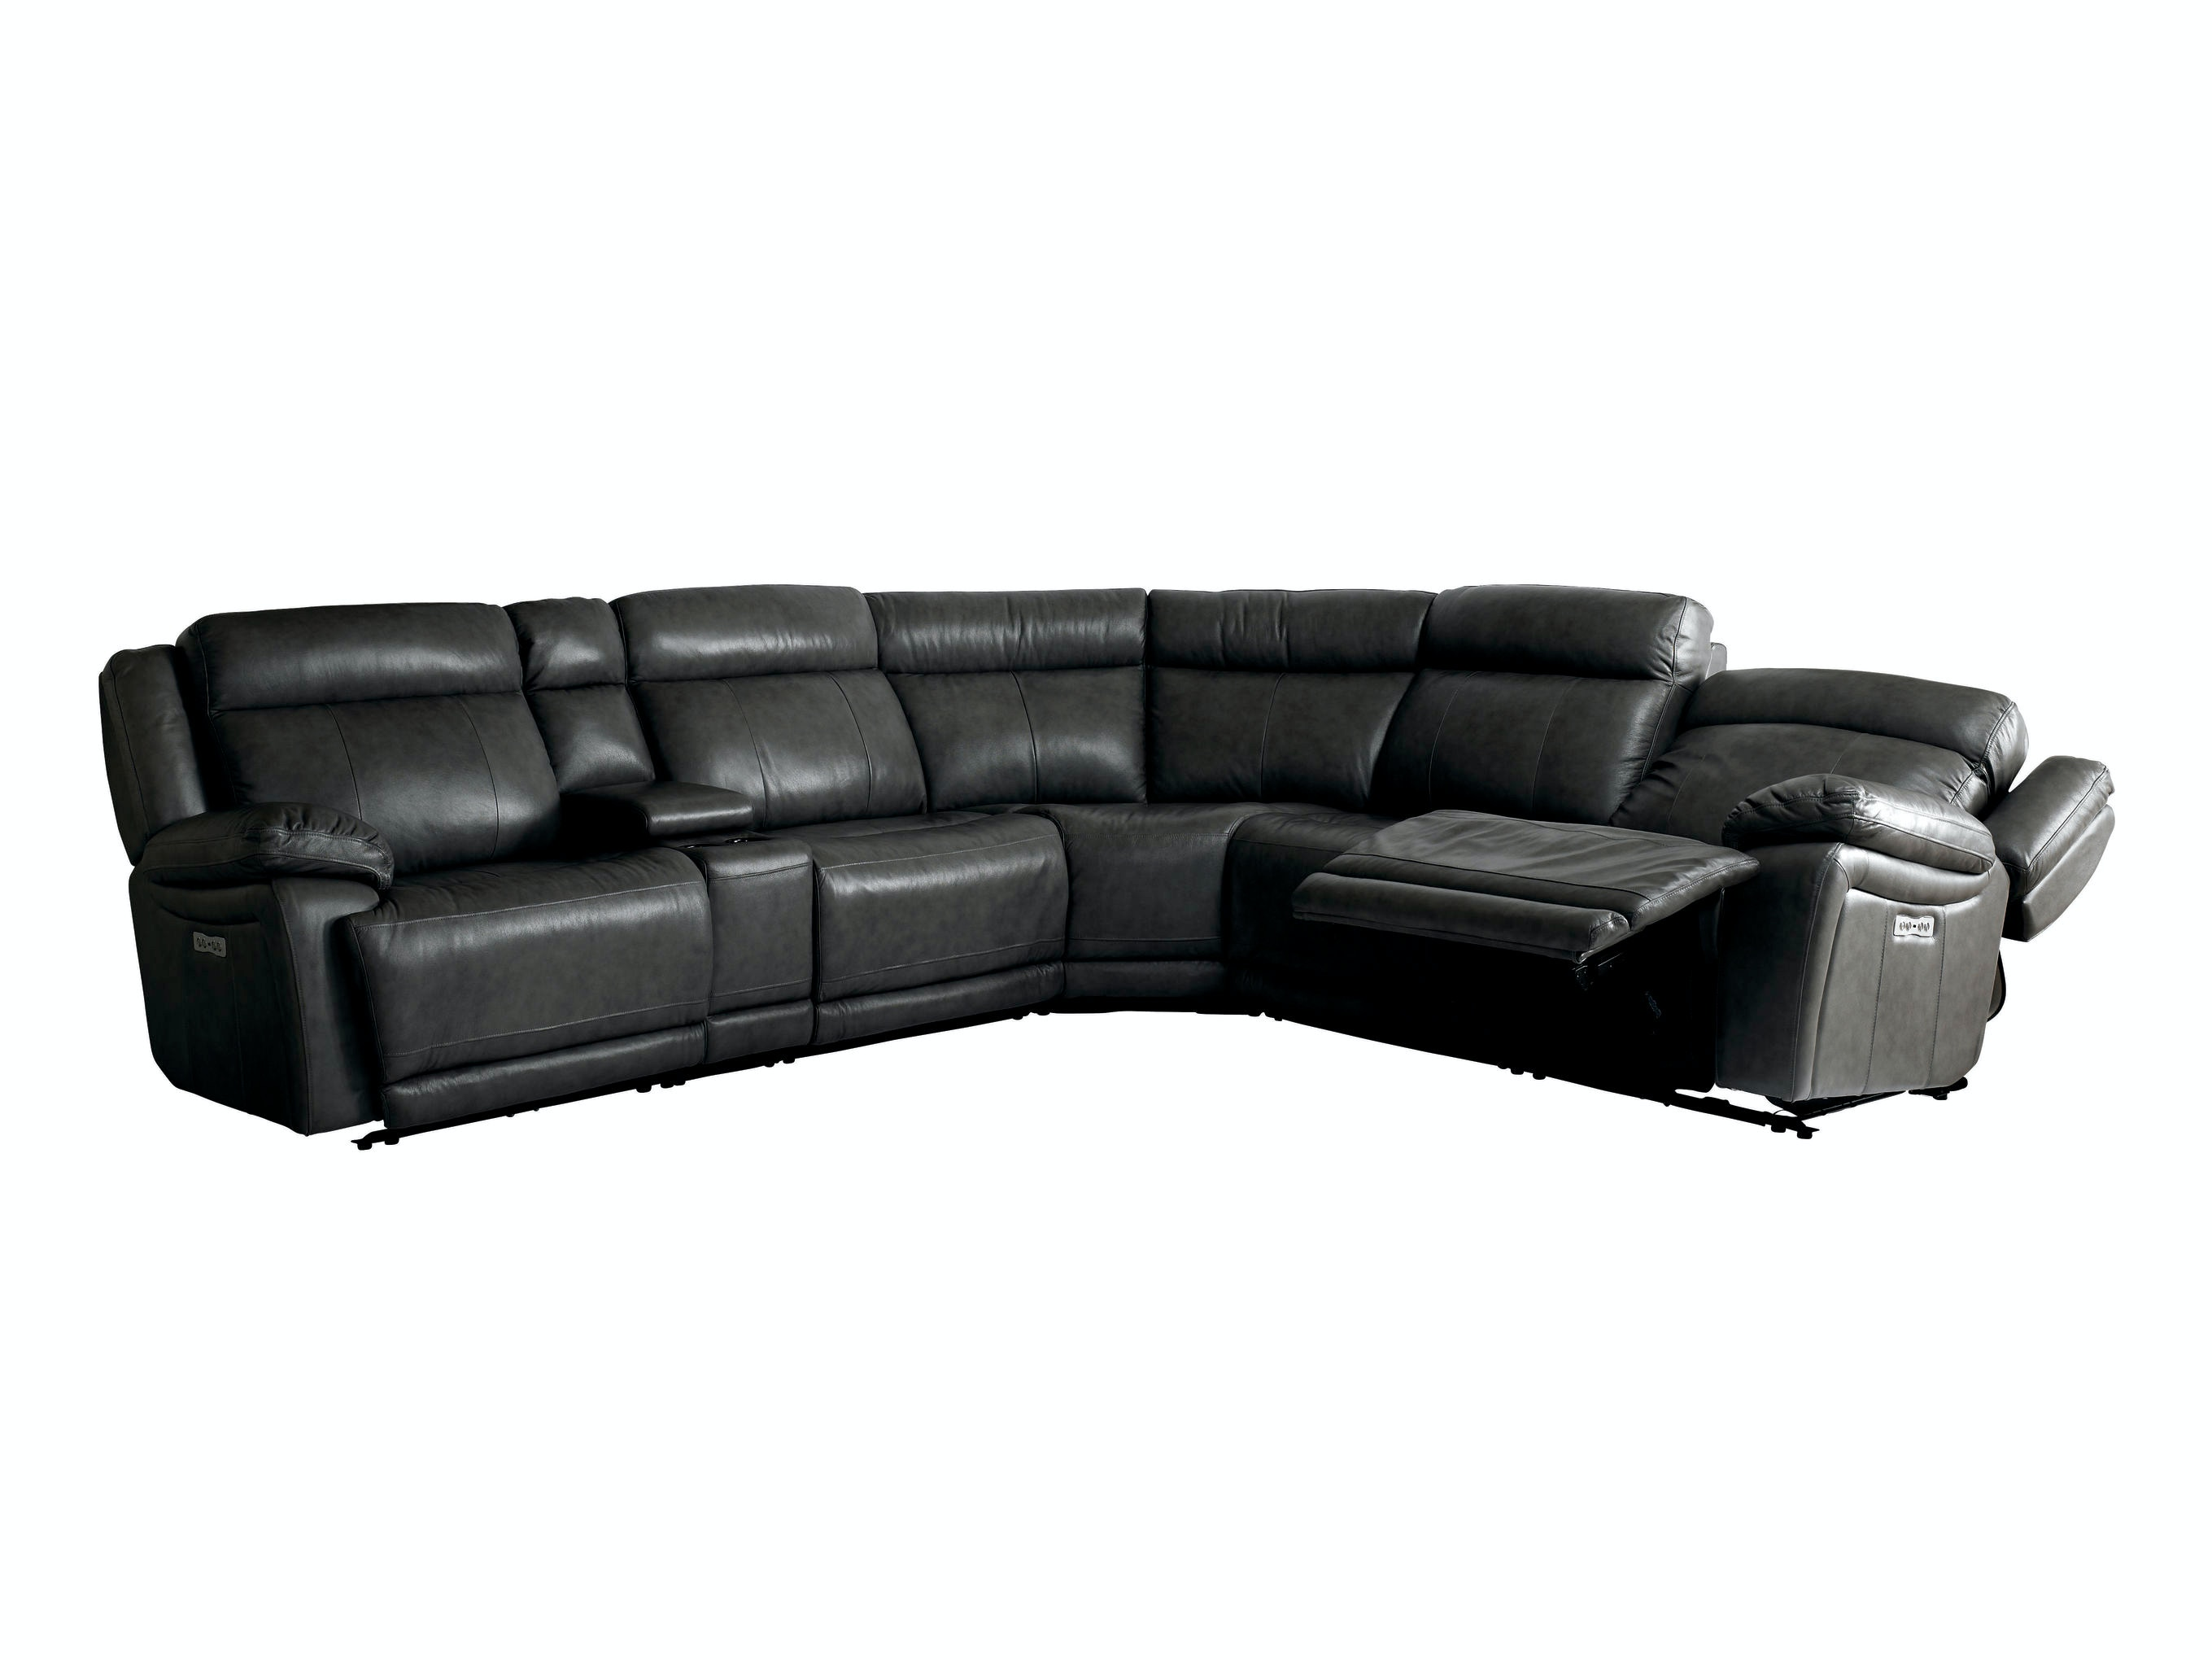 Recliner sectional lugar 3 piece bonded leather reclining for 2 arm pressback chaise